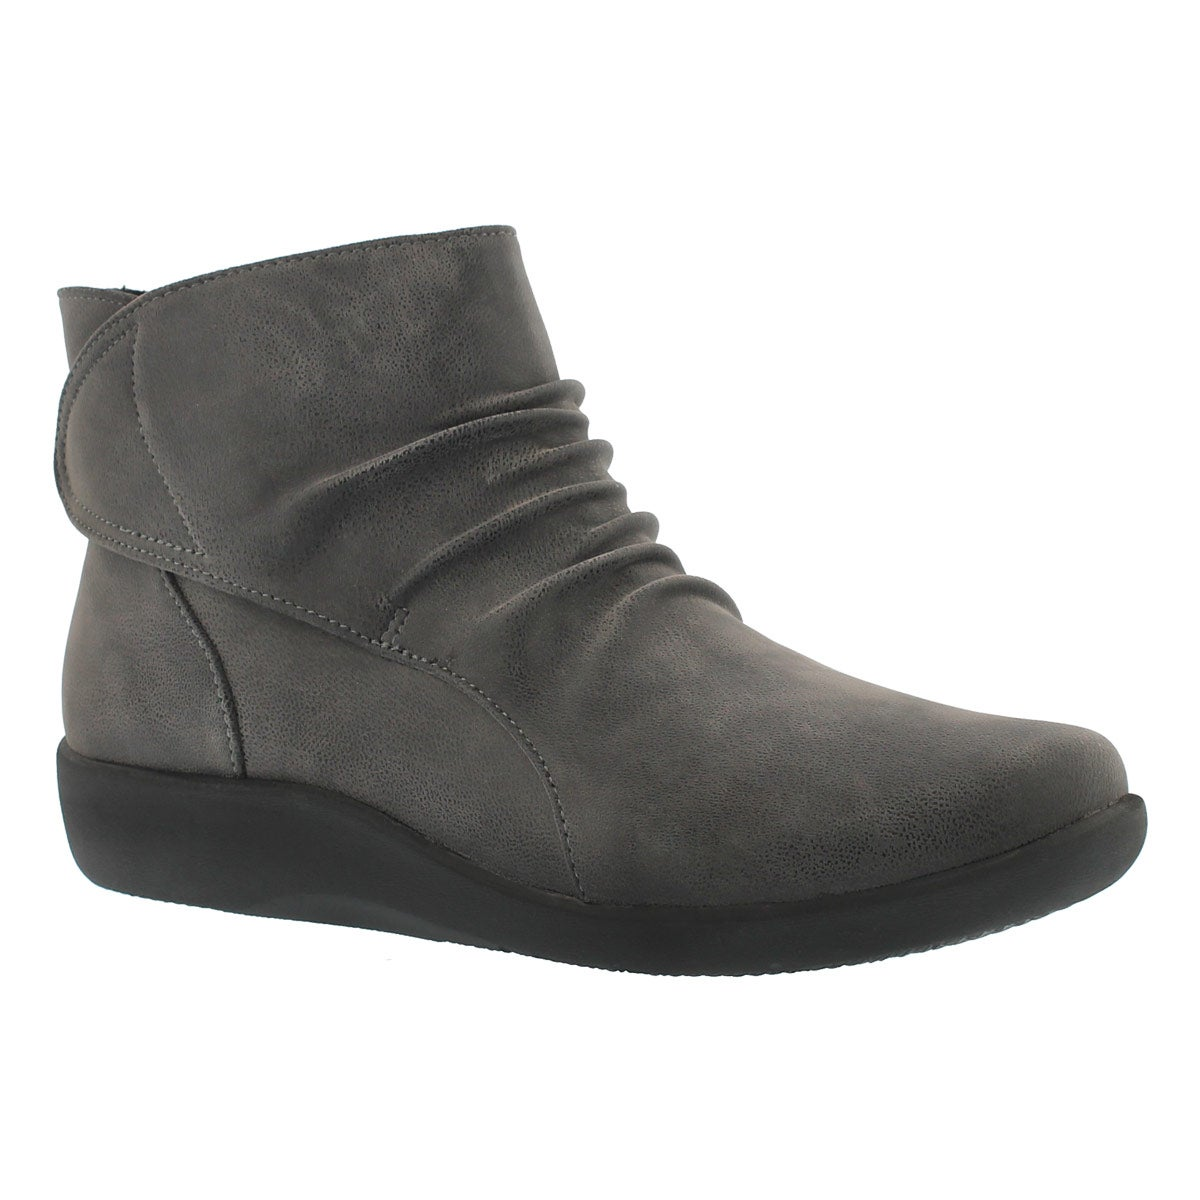 Women's SILLIAN CHELL grey ankle boots